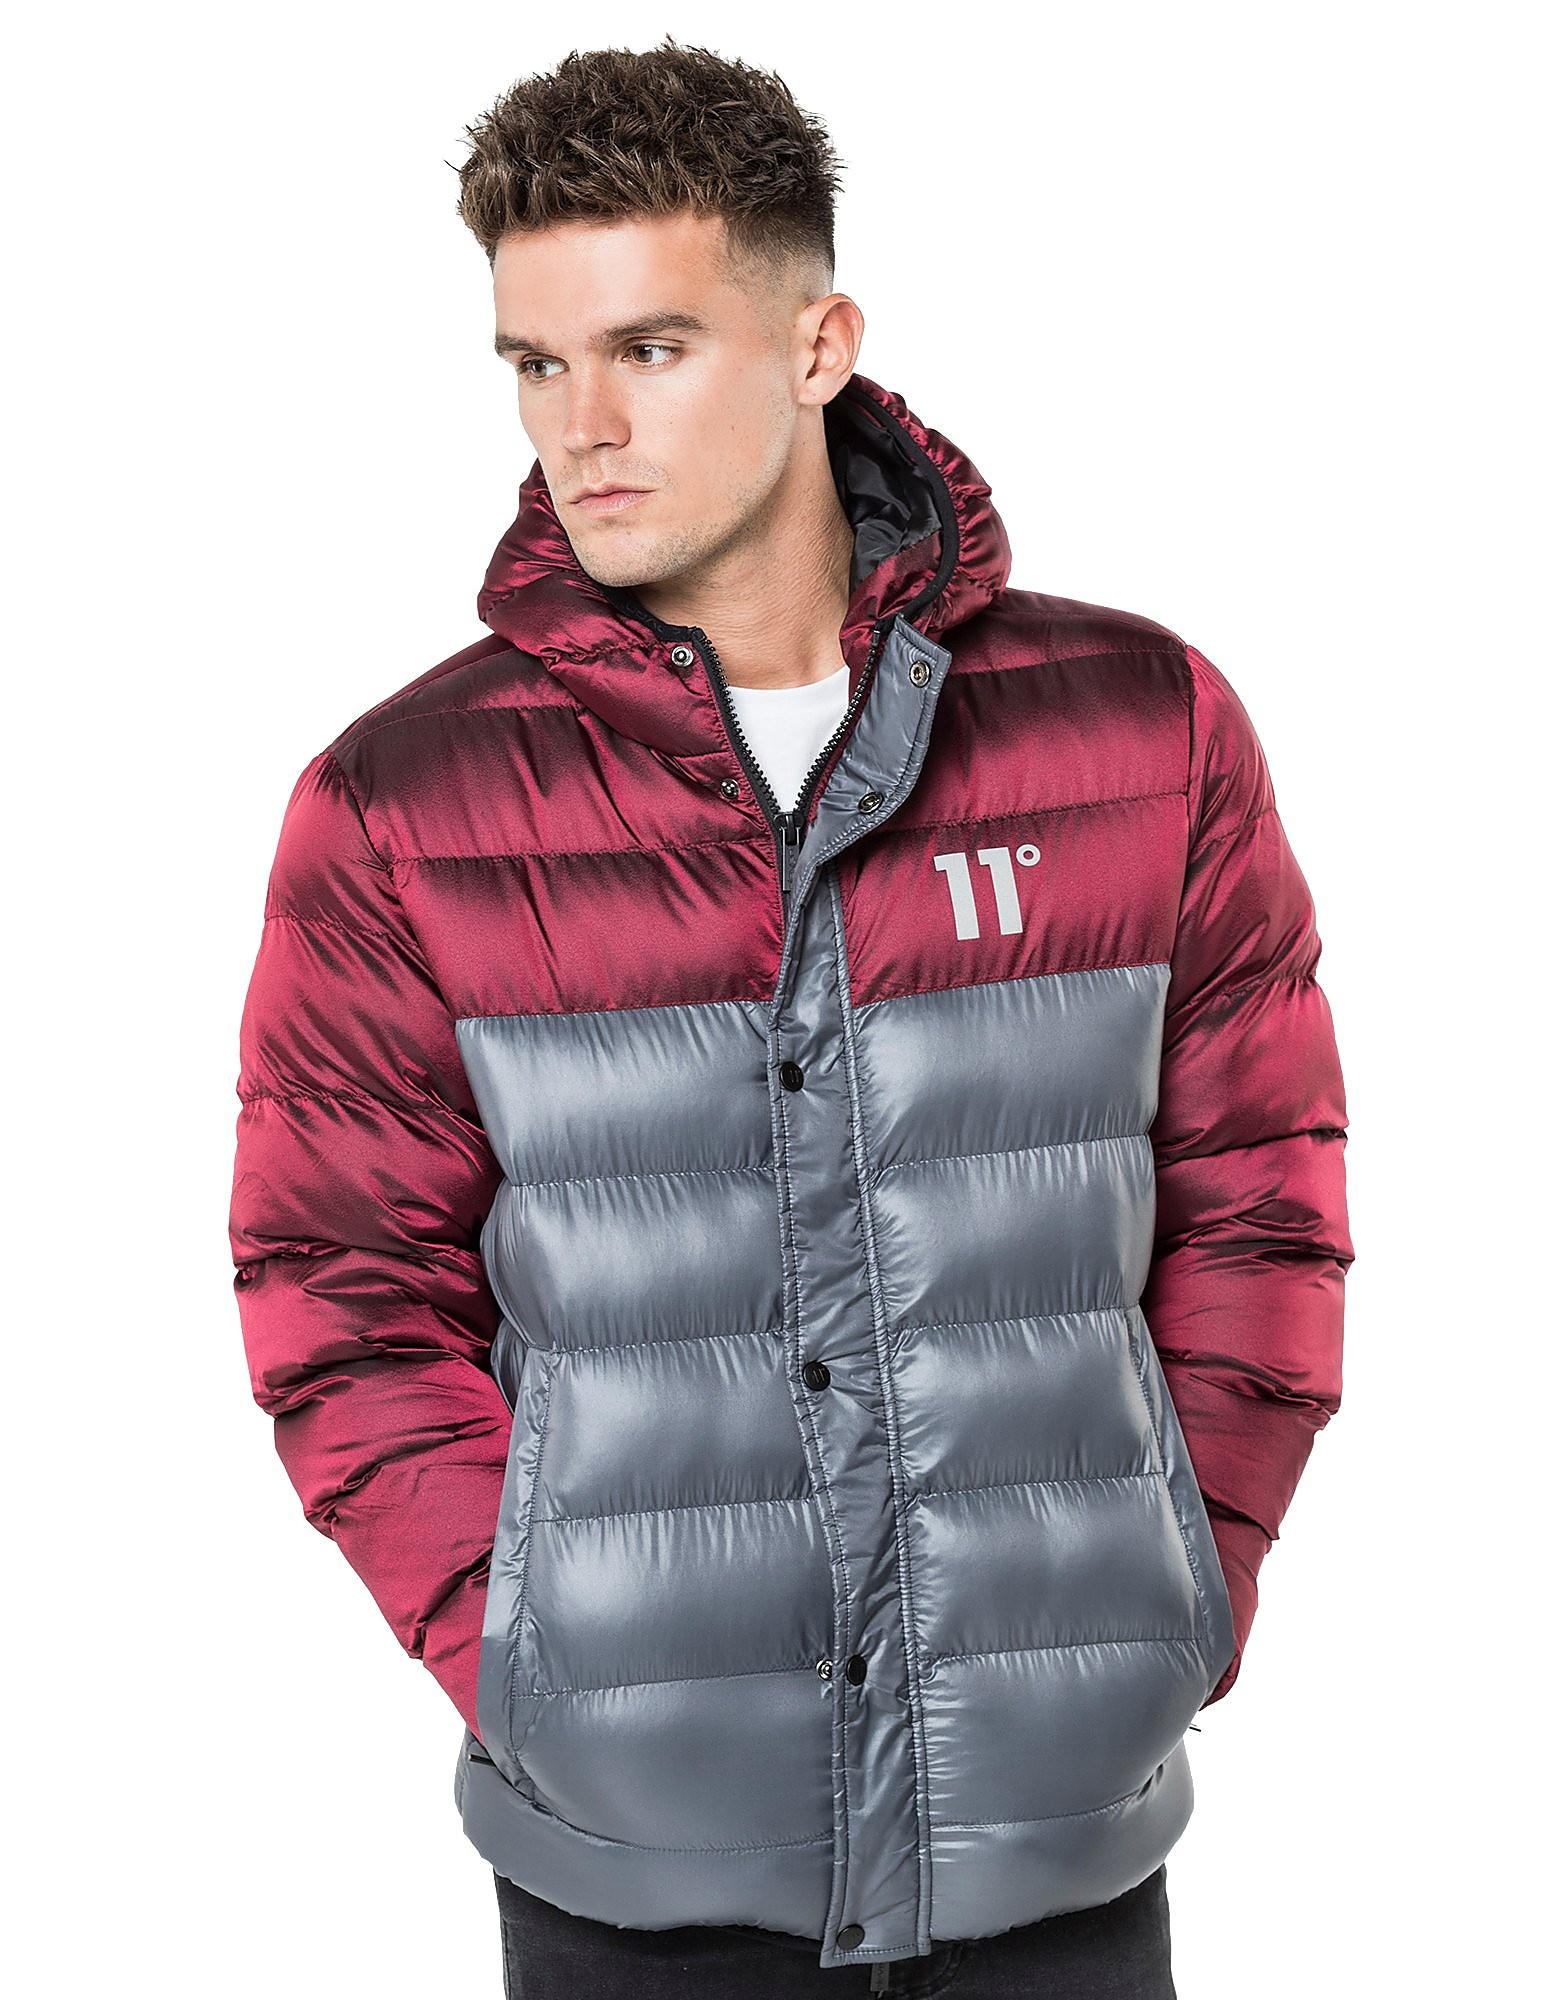 11 Degrees Strike Jacket